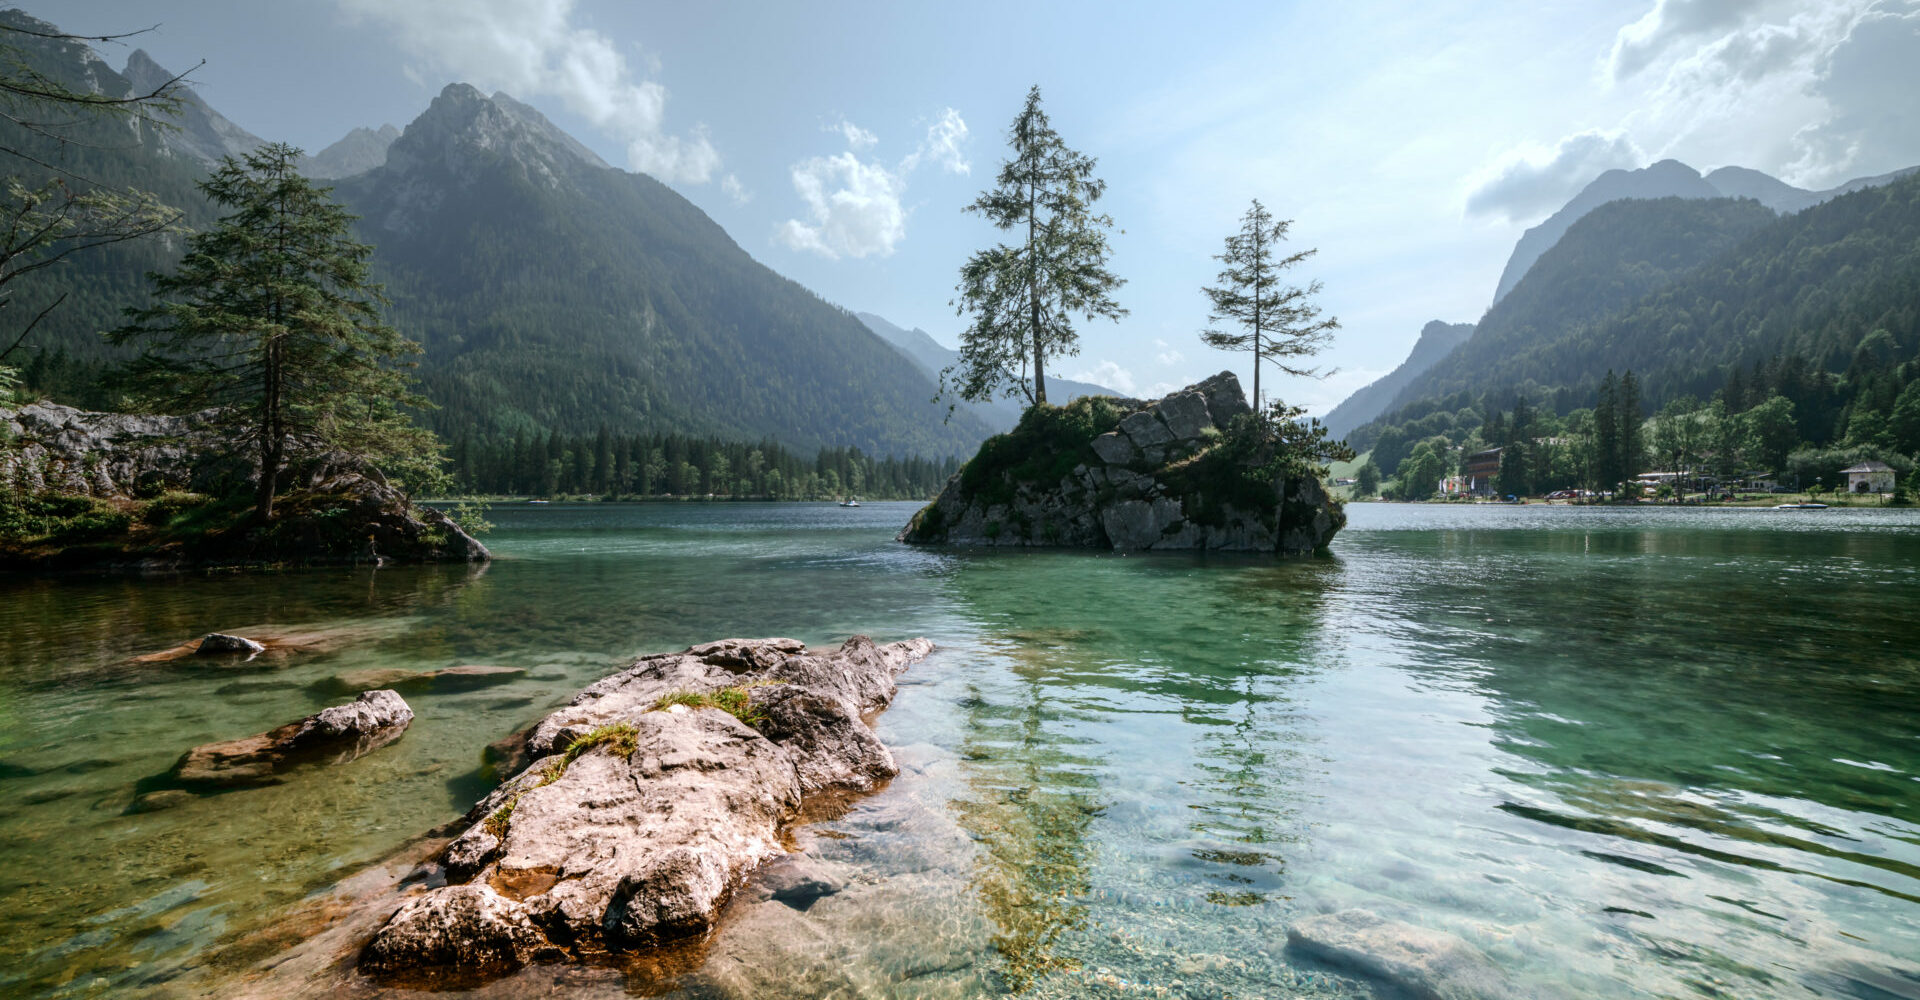 Amazing sunny summer day on the Hintersee lake in Austrian Alps, Europe.